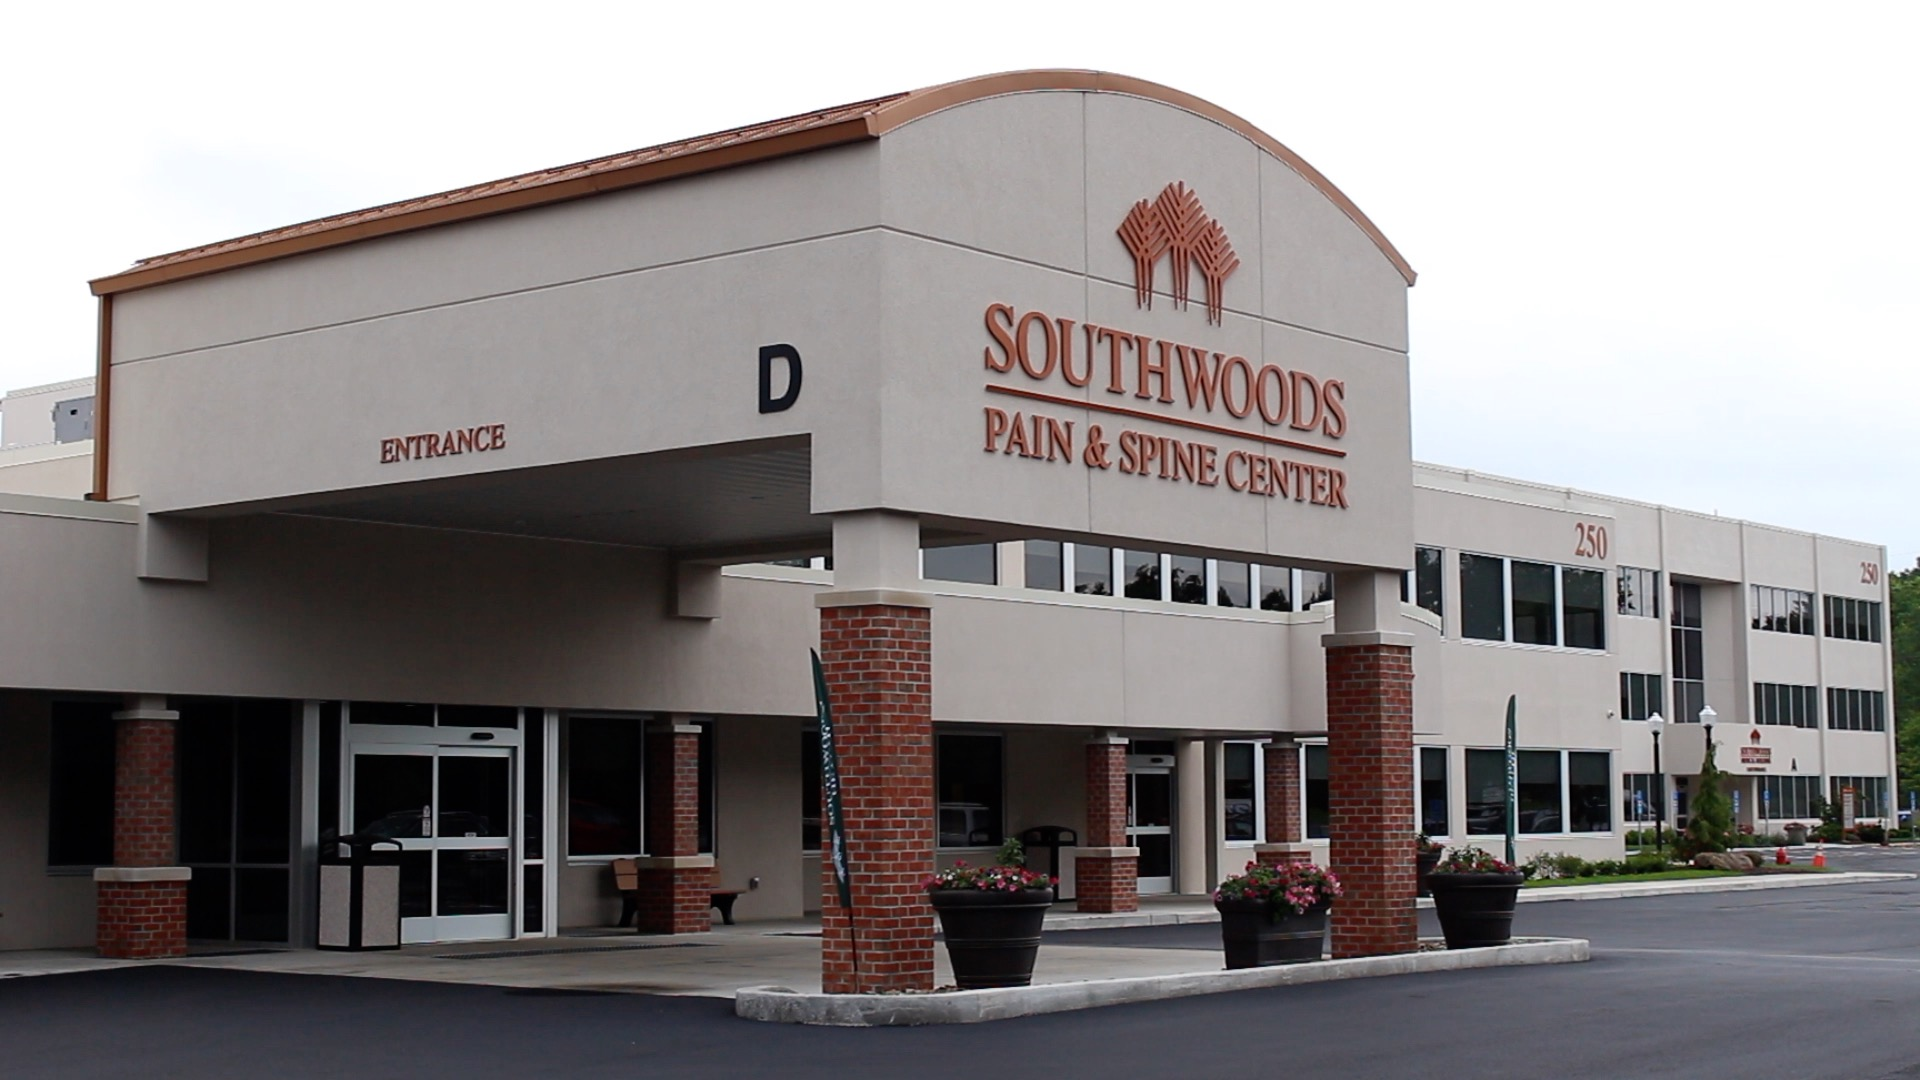 Southwoods Pain & Spine Center